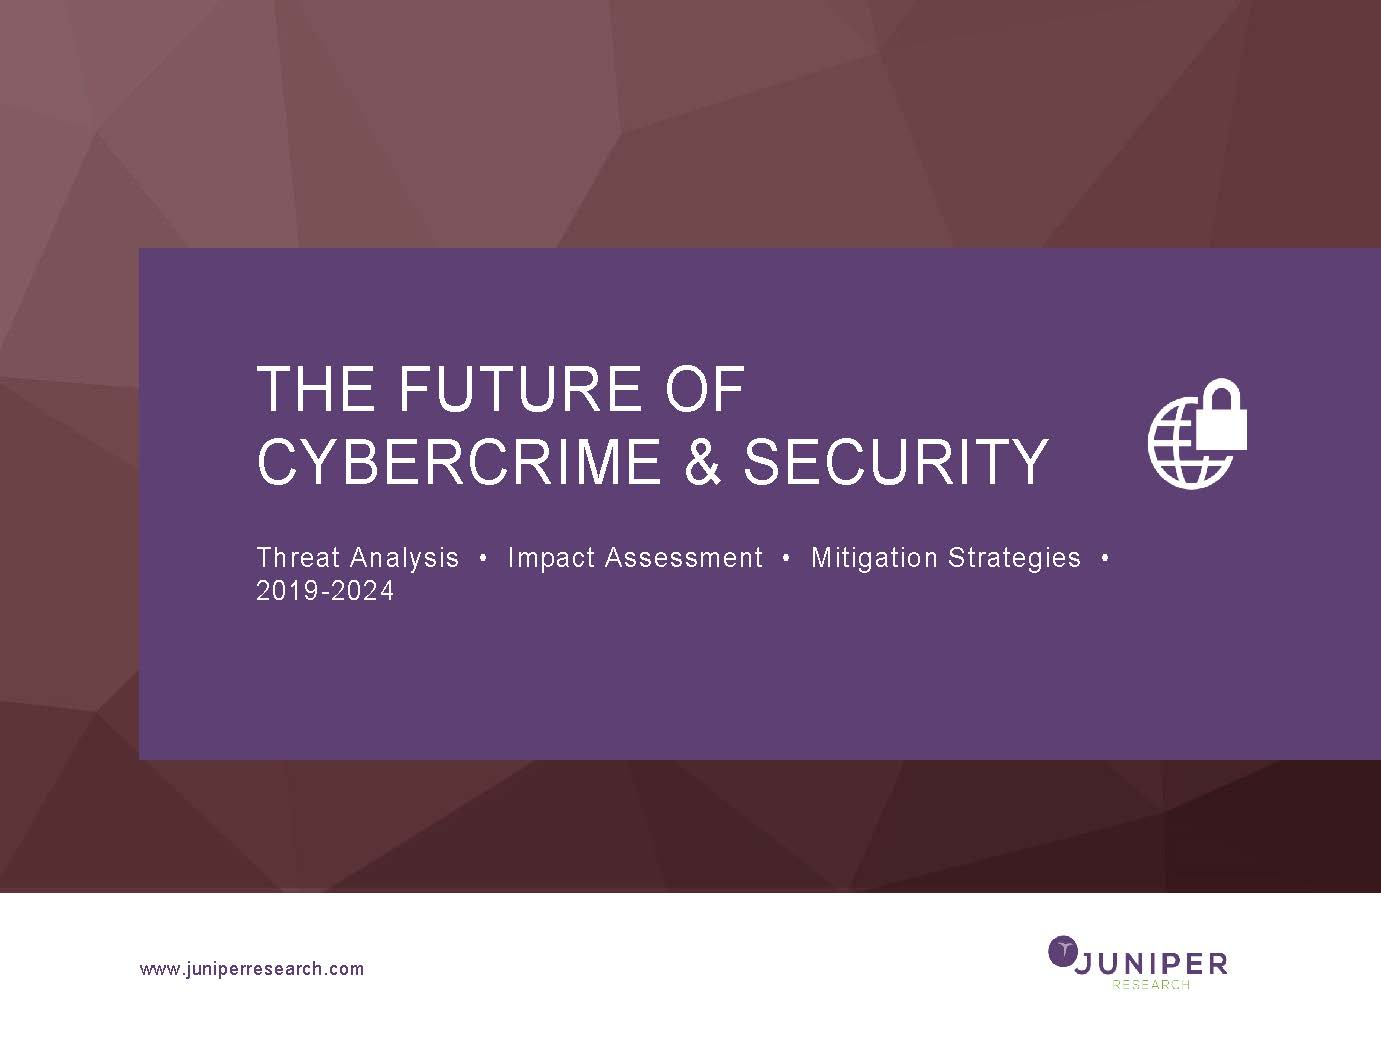 The Future of Cybercrime & Security: Threat Analysis, Impact Assessment & Leading Vendors 2019-2024